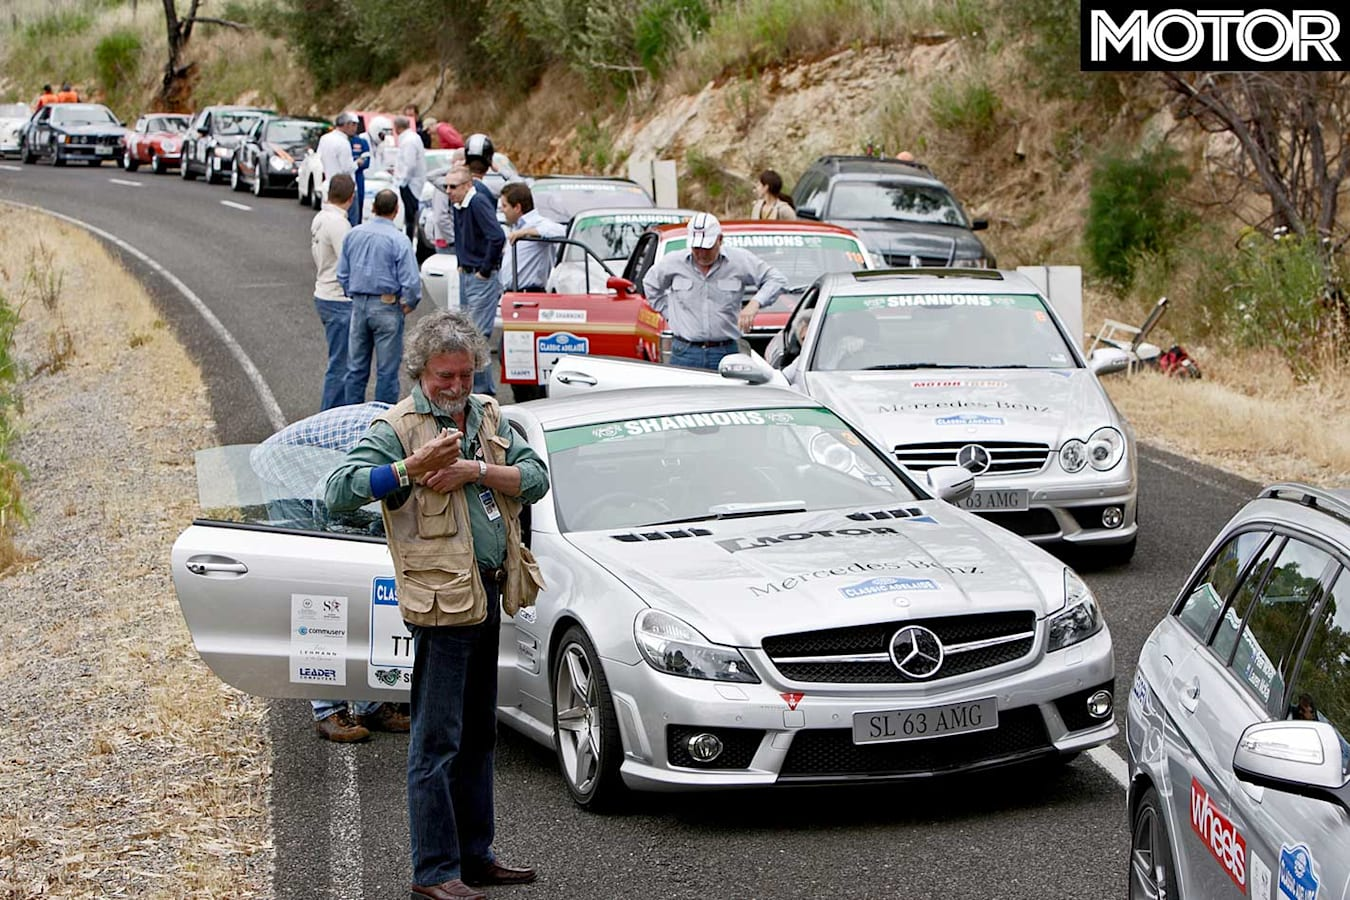 Tackling The Classic Adelaide With Sl 63 Amg Line Up Jpg